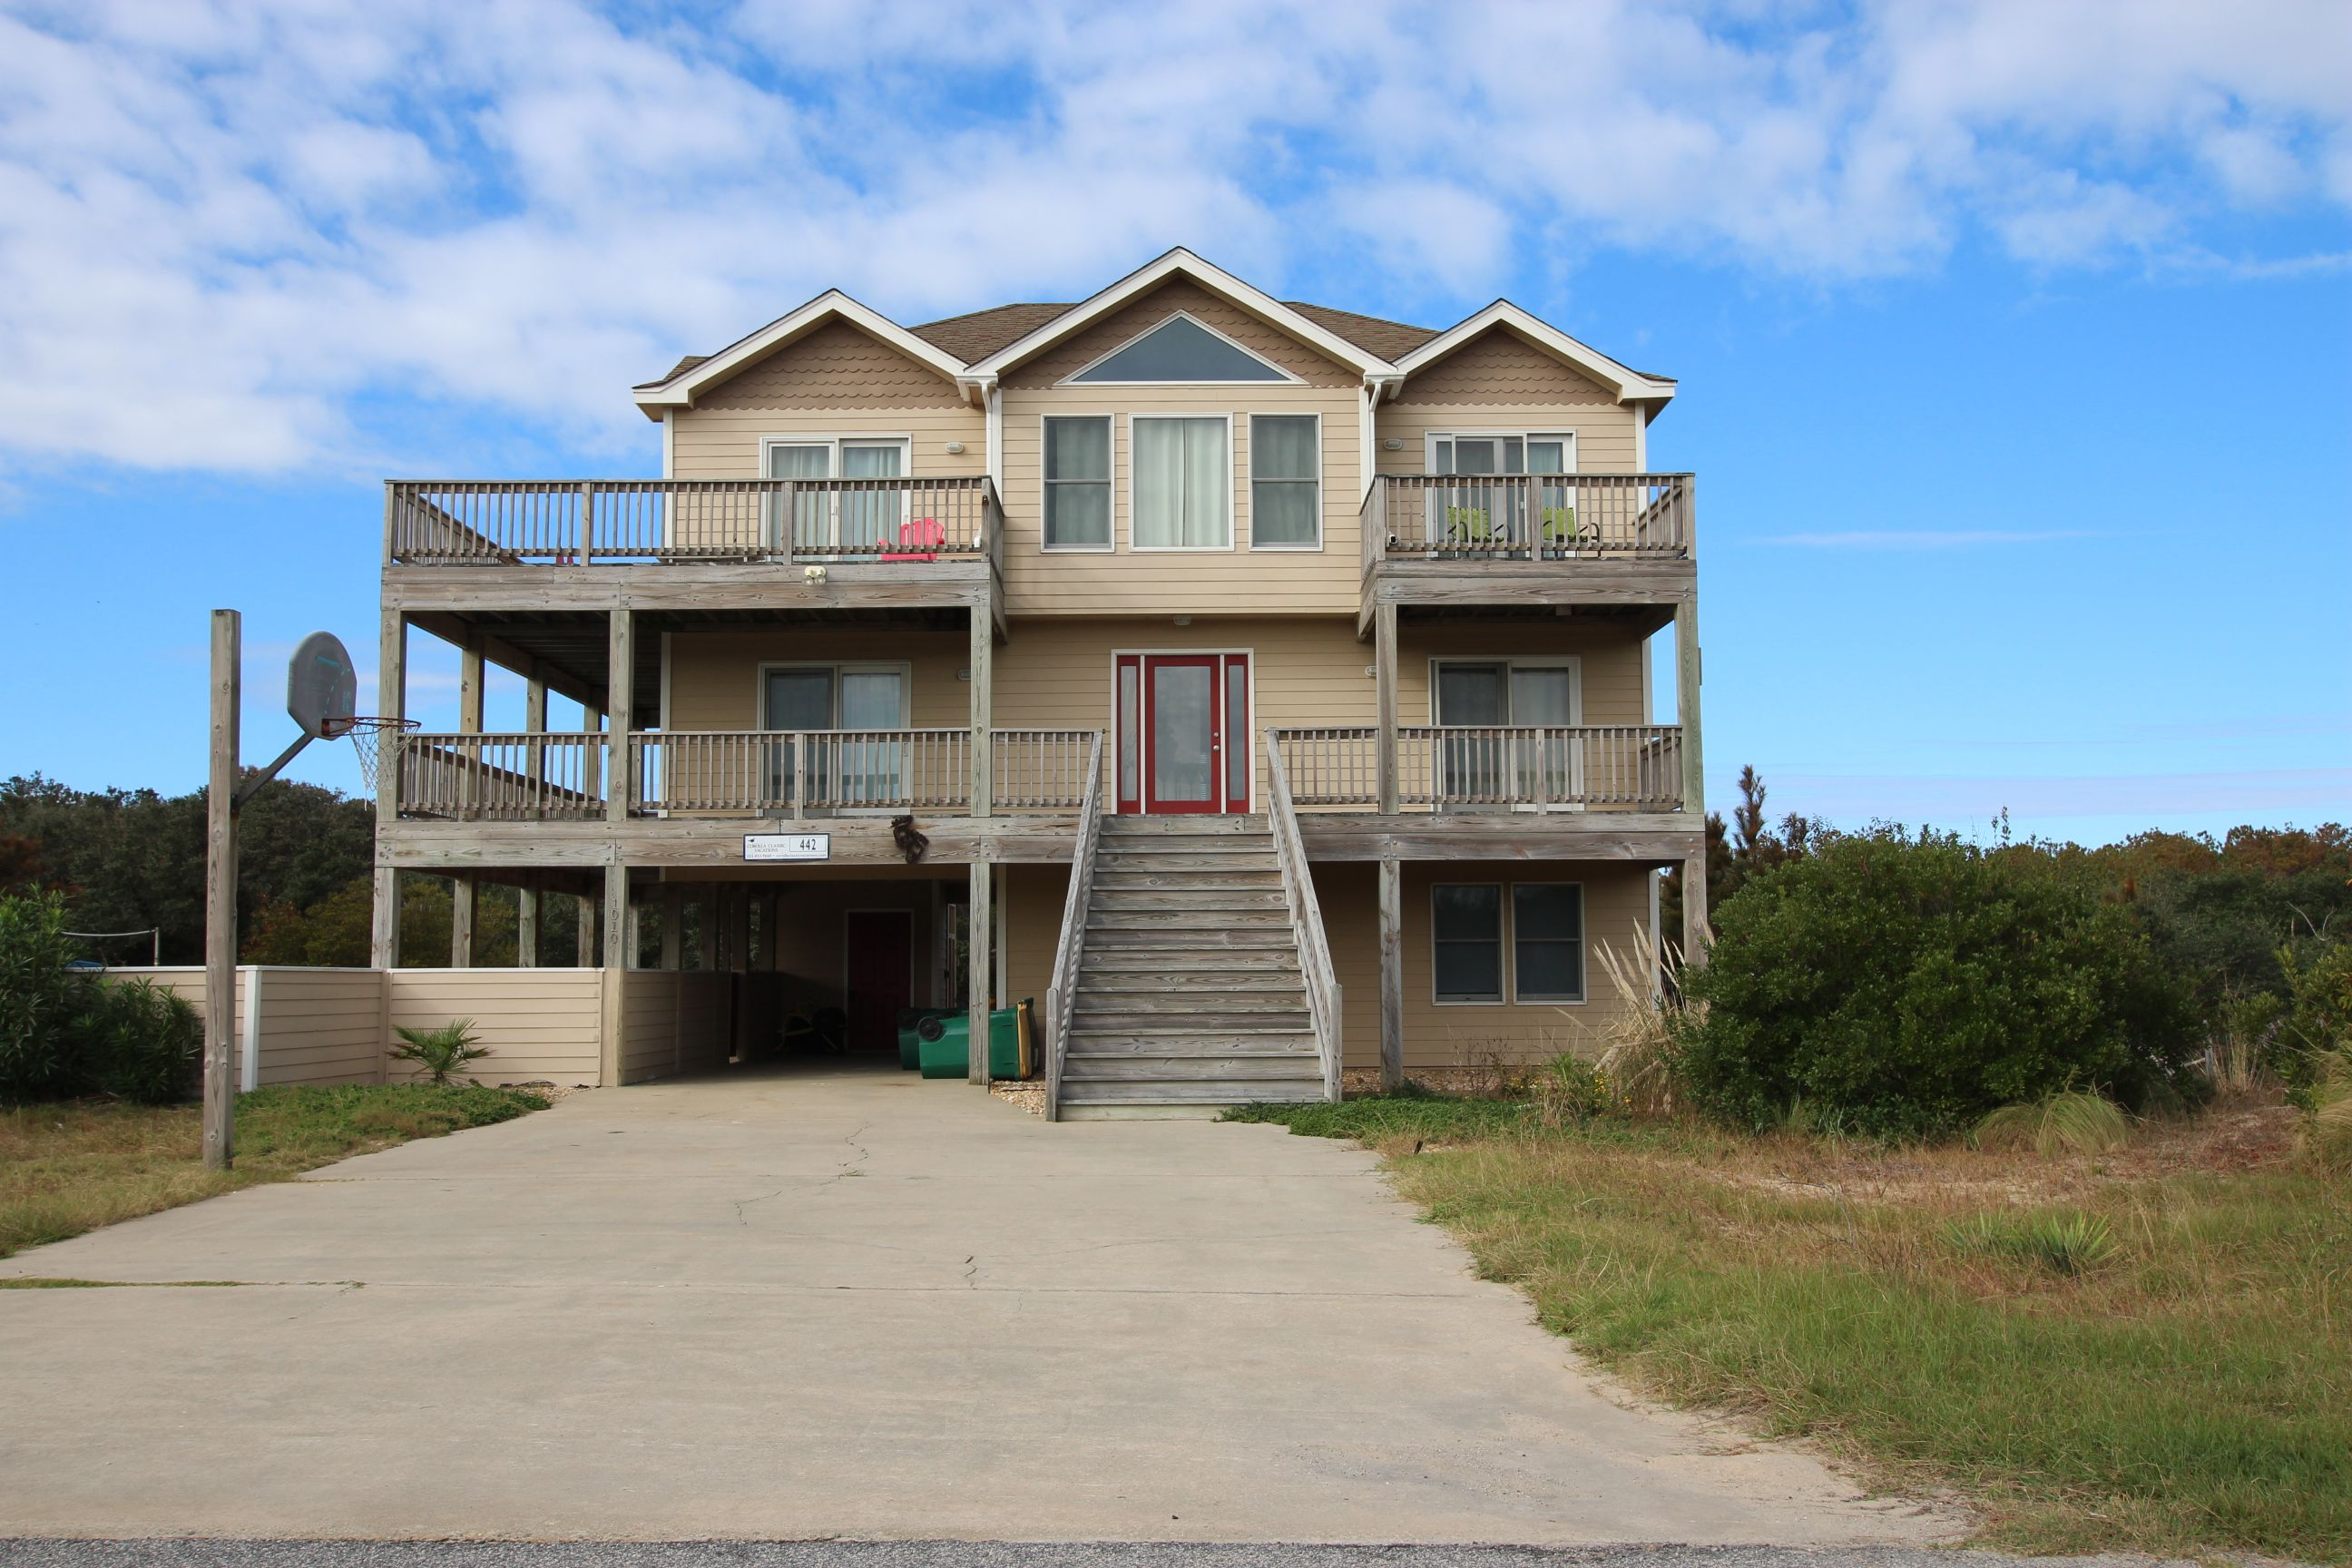 Barefoot In The Sand 7 Bedroom 5 5 Bathroom Ocean Side Private Pool And Hot Tub Pool Table Baby Eq Vacation Home Vacation Rental Nc Vacation Rentals